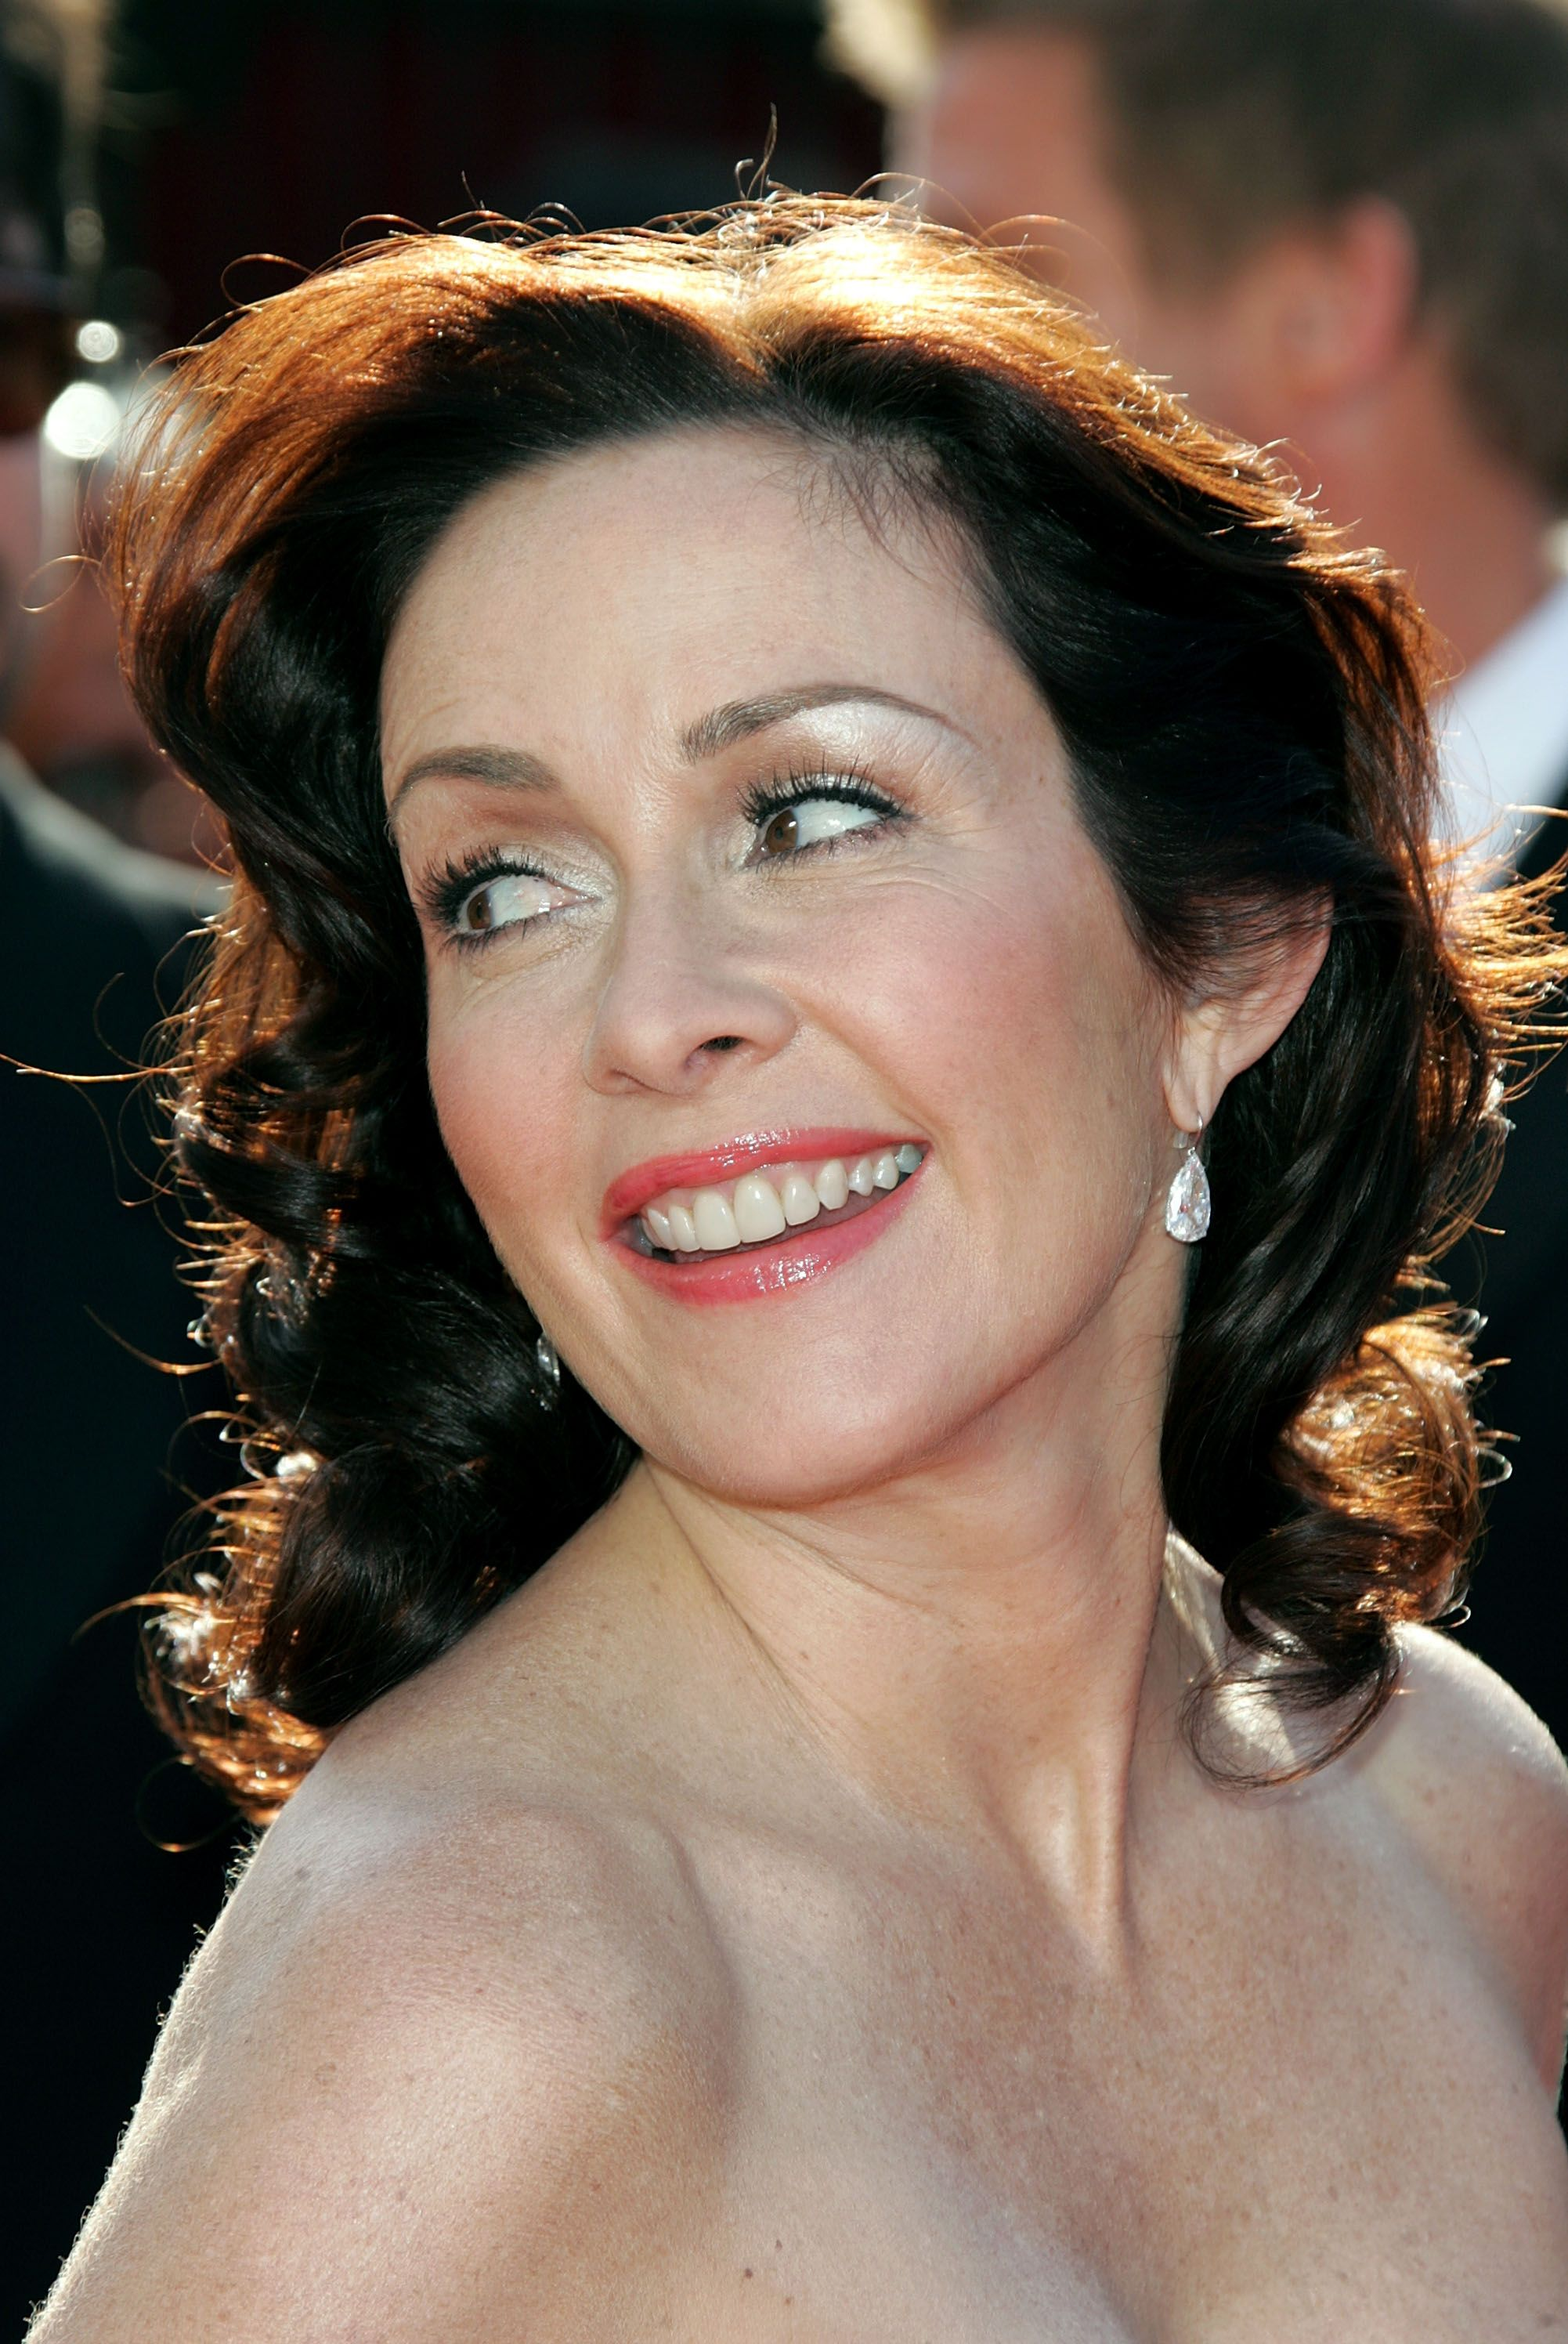 Patricia Heaton nudes (81 pictures) Hacked, YouTube, braless